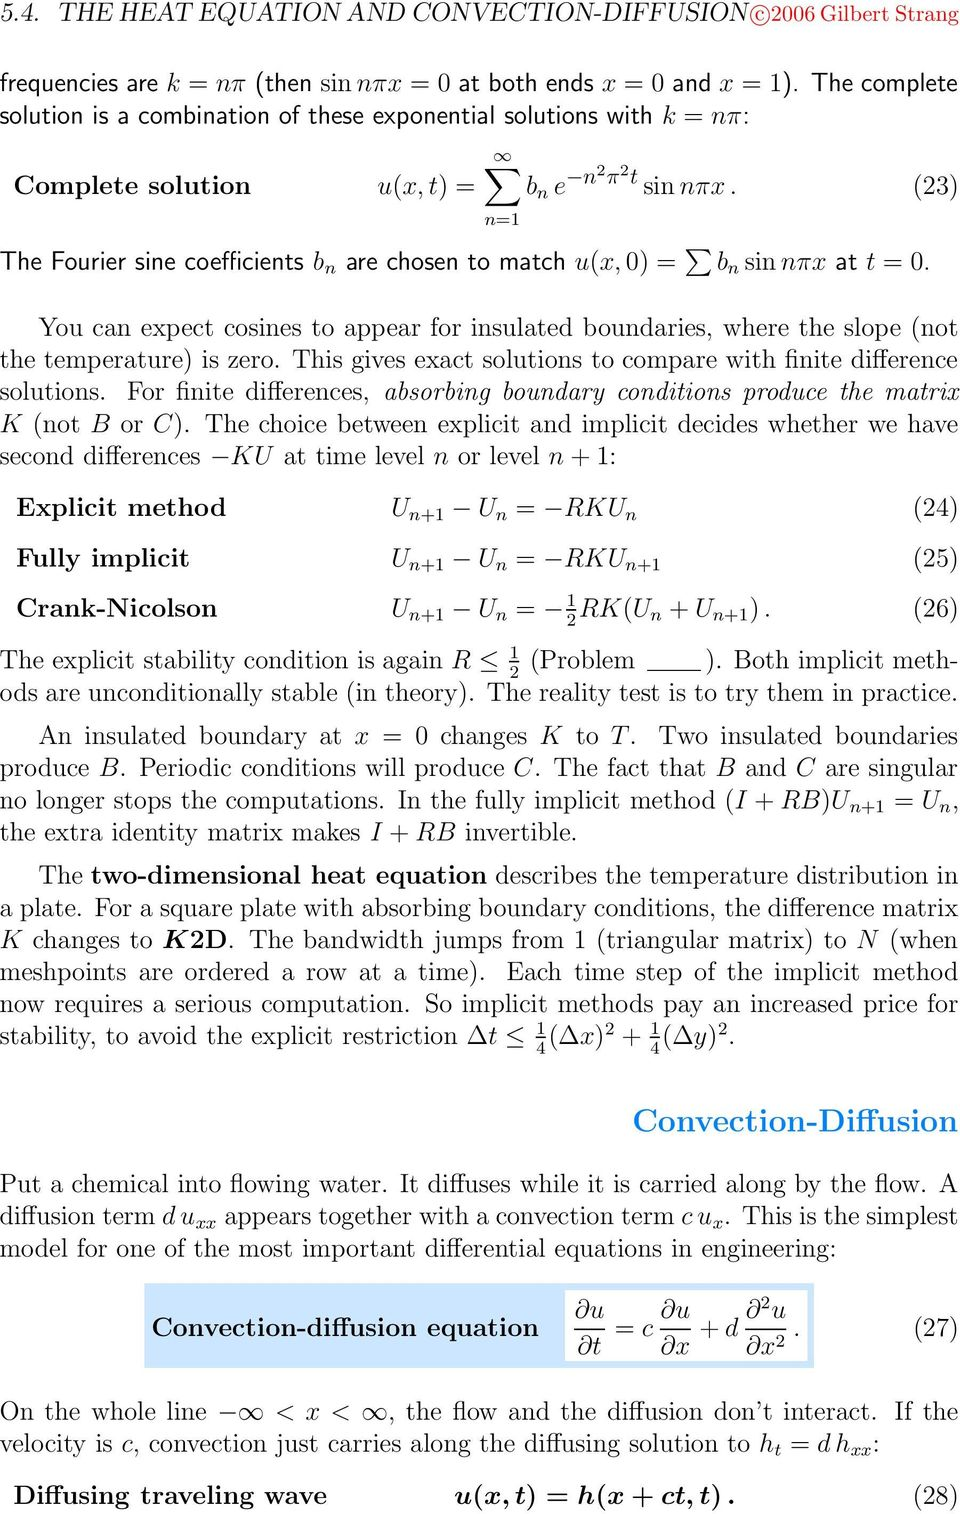 5 4 The Heat Equation and Convection-Diffusion - PDF